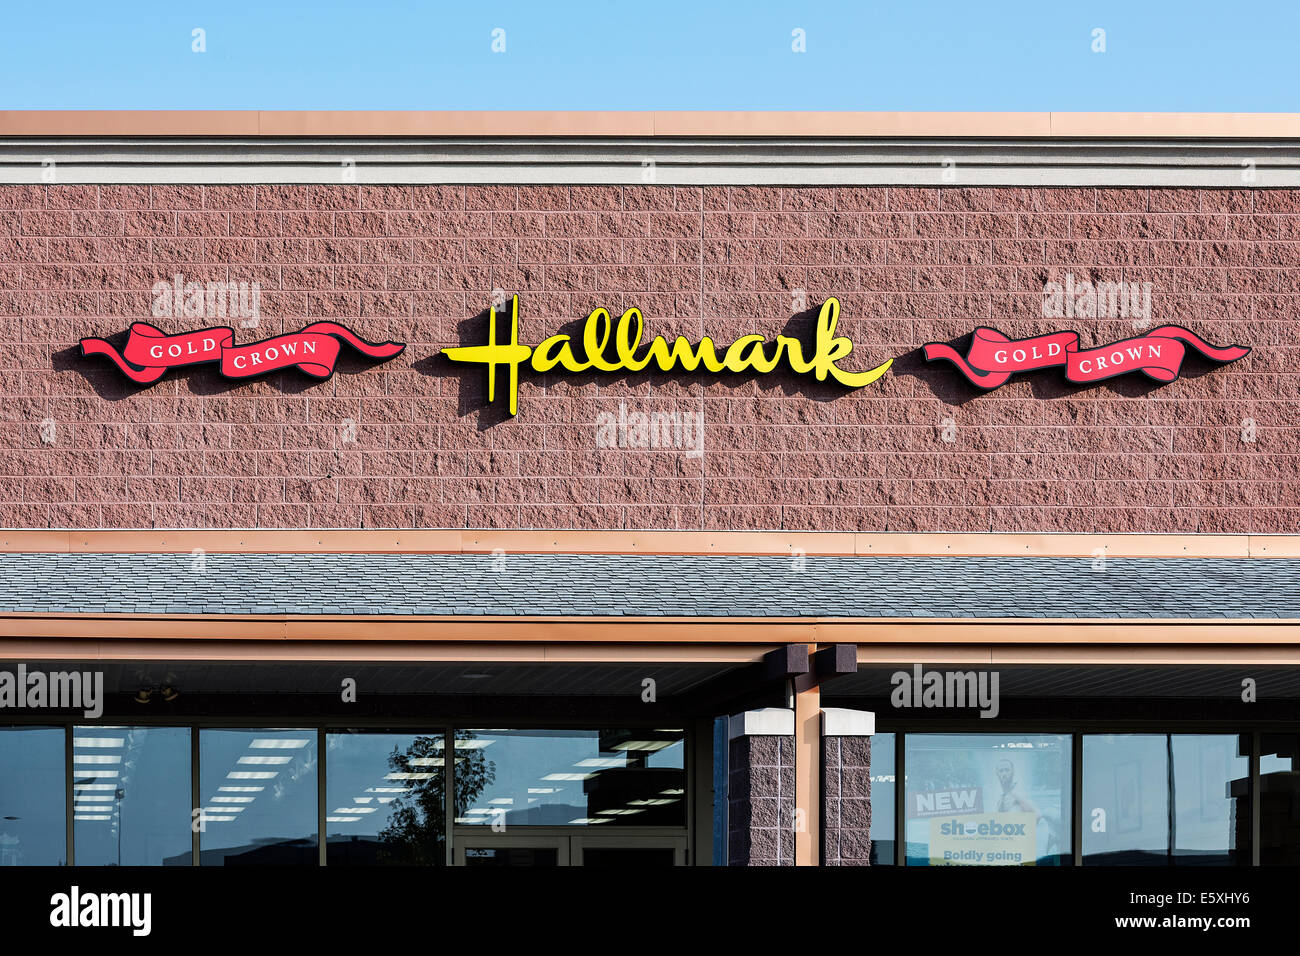 Hallmark Greeting Card store, Mount Laural, New Jersey, USA - Stock Image